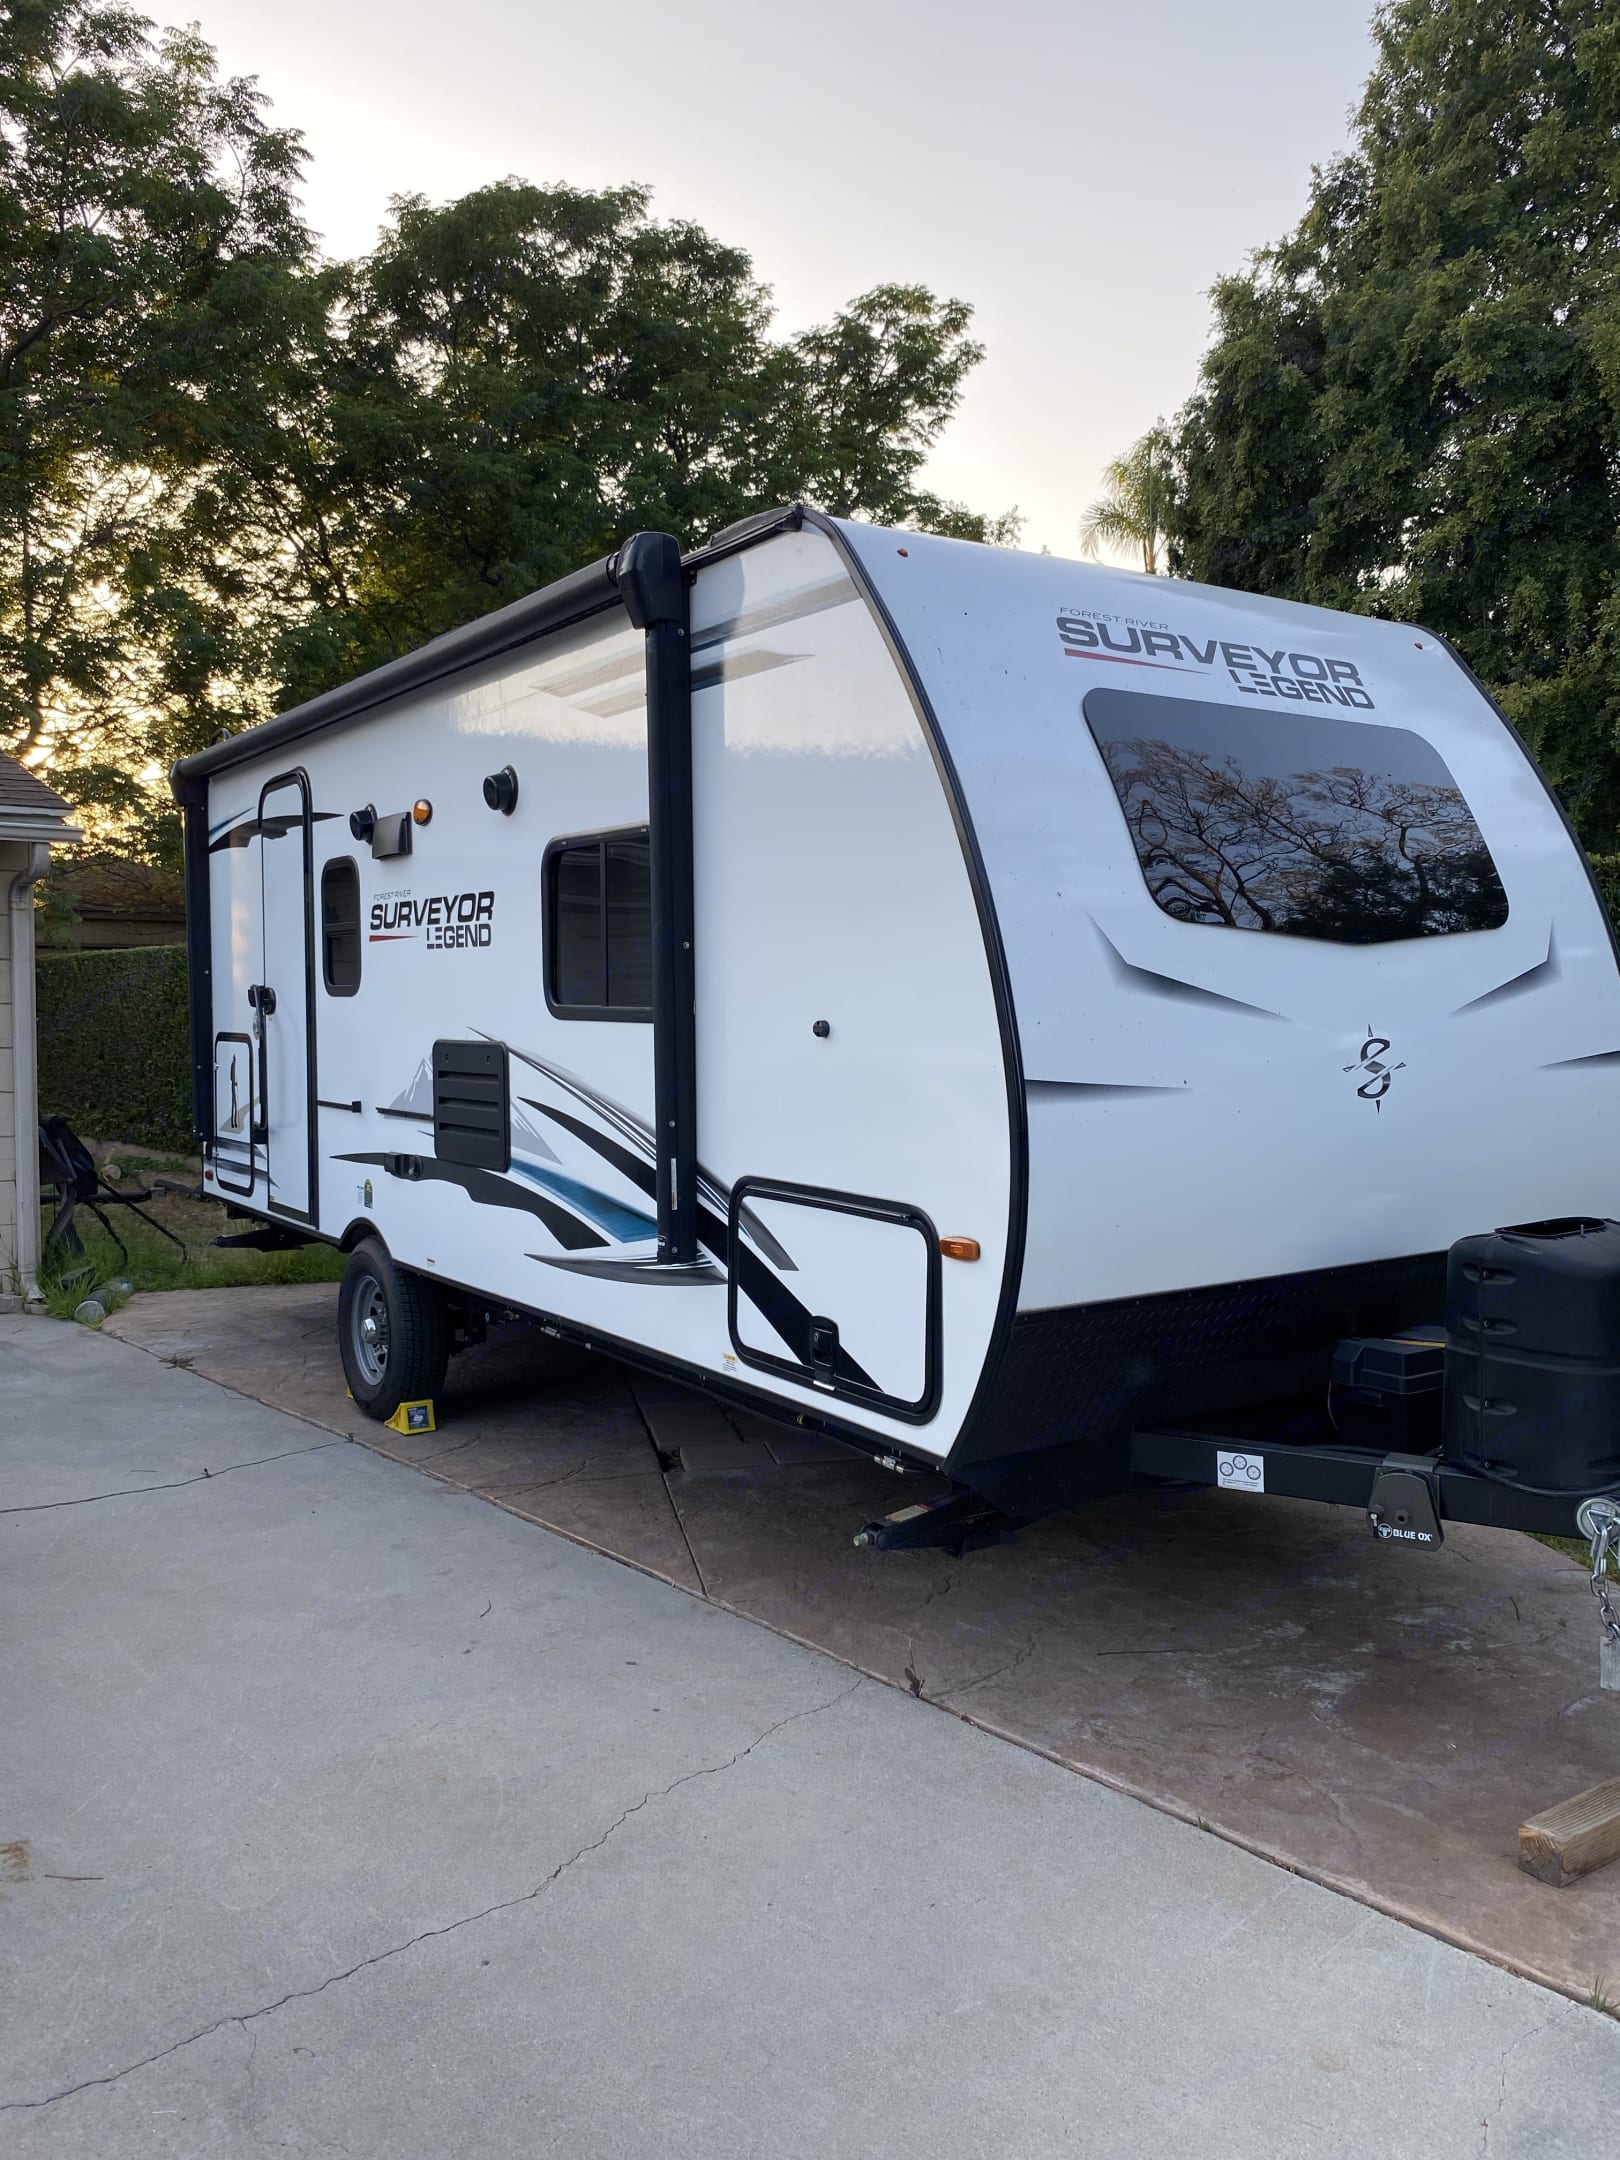 Light enough to tow with smaller vehicle. . Forest River Surveyor 2021